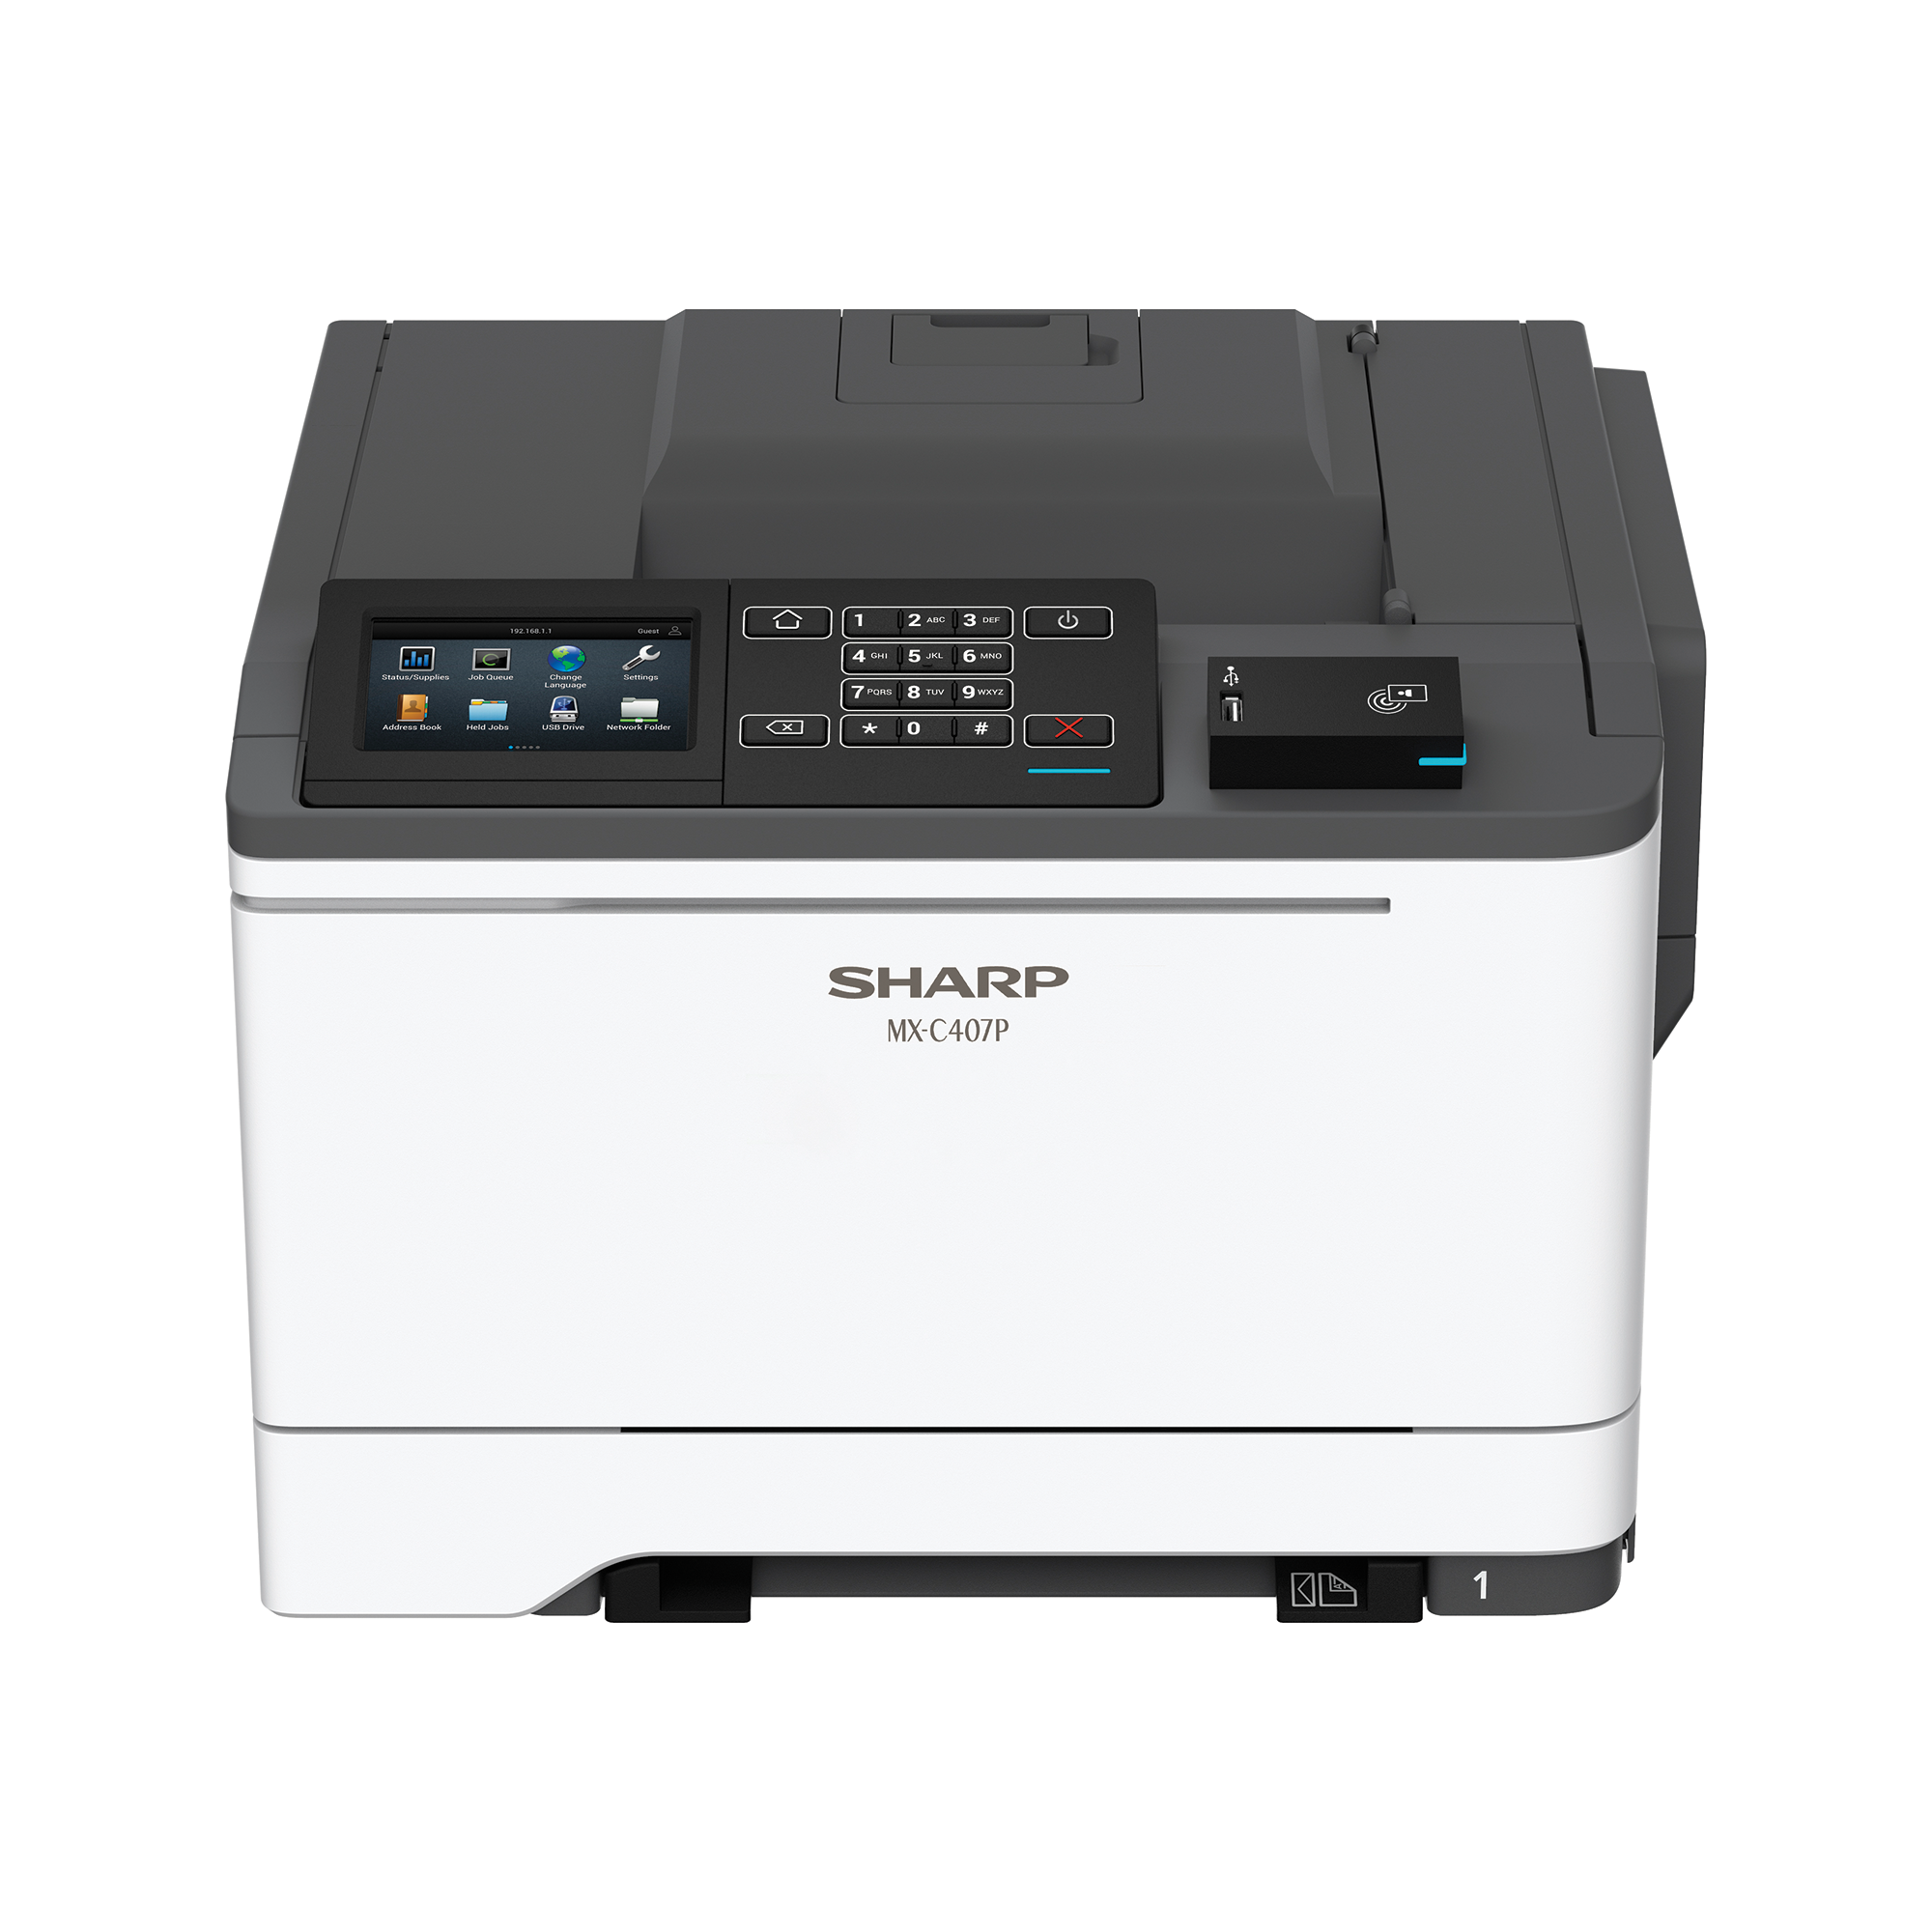 Sharp ,MX-C407P, Color Laser Printer, Refurbished (MX-C407P)